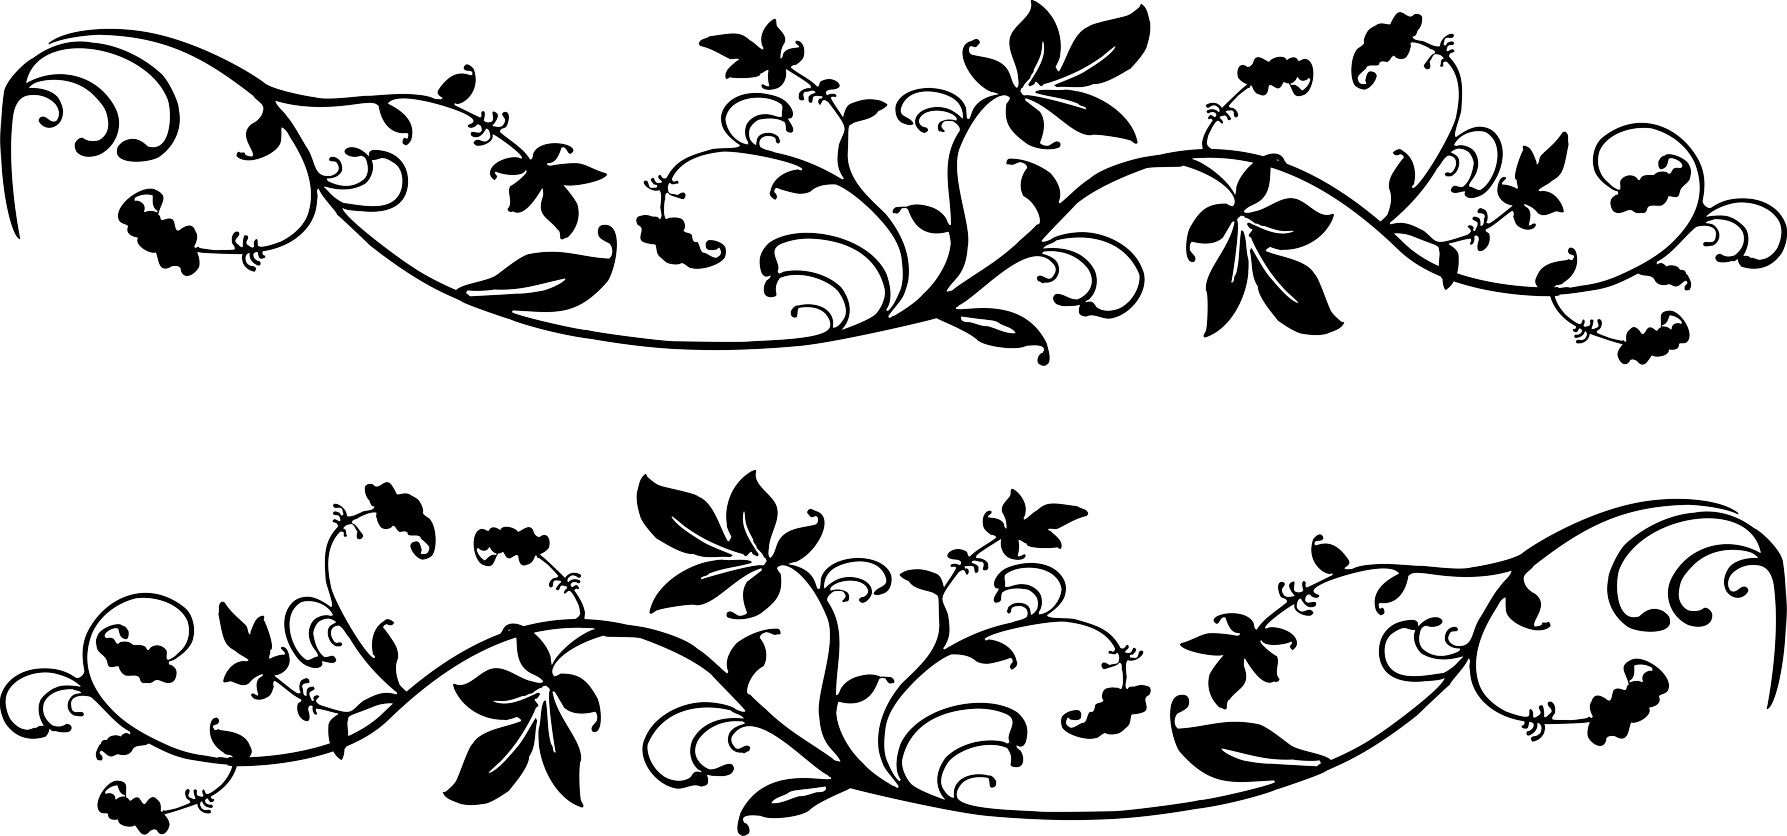 Discount action! Sticker tendril-decor 980 x 200 mm 001